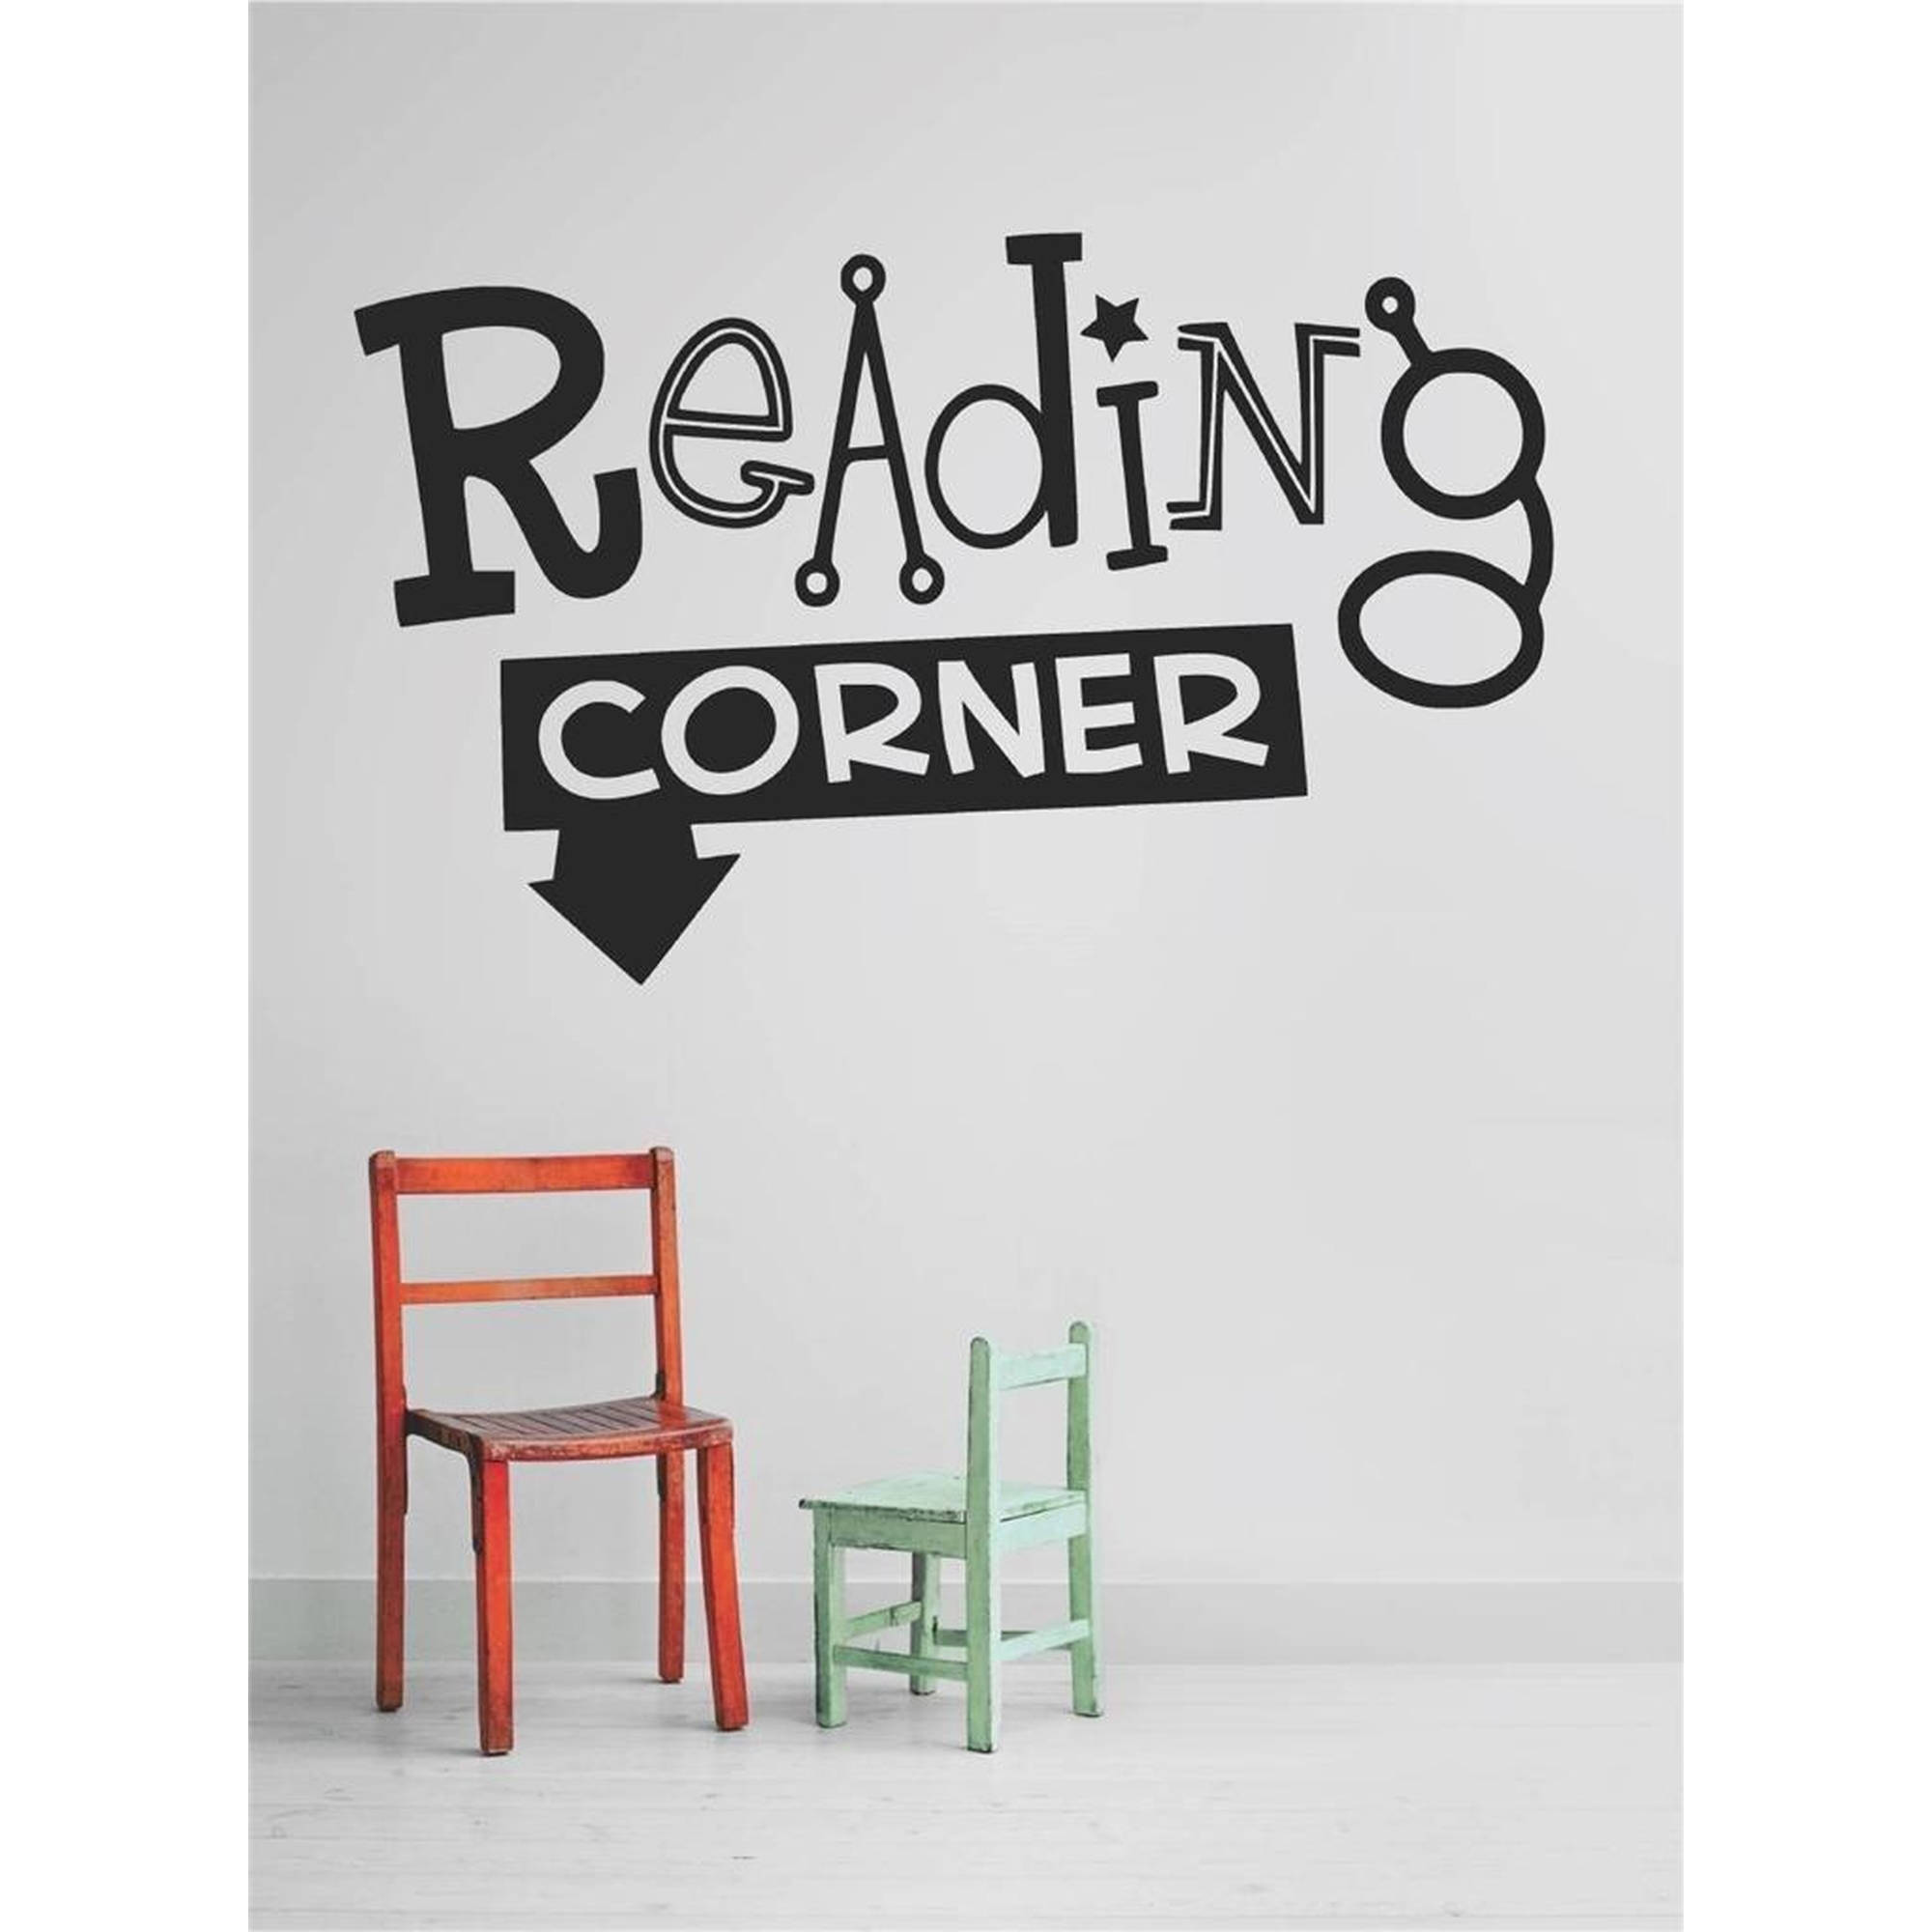 "Reading Corner Kids Bedroom Daycare School Vinyl Wall Decal, 9"" x 20"", Black"